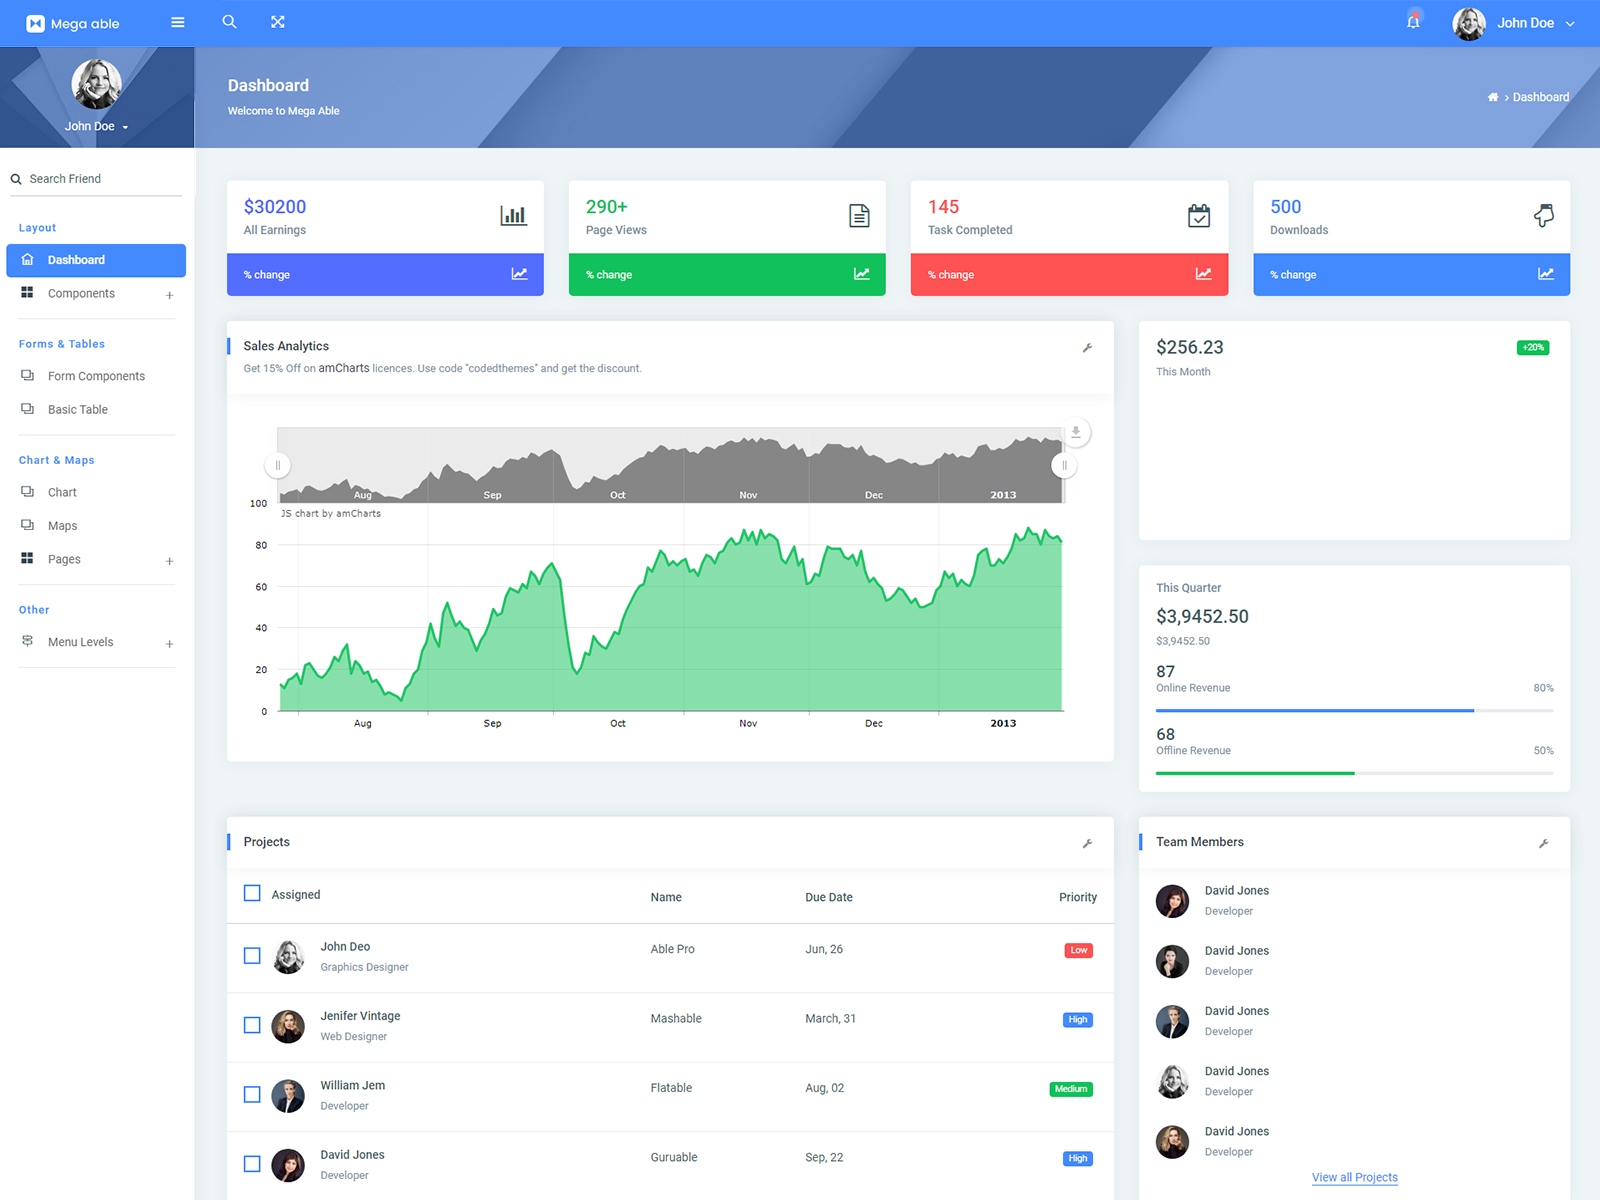 Mega Able Bootstrap 4 Admin Template cover image